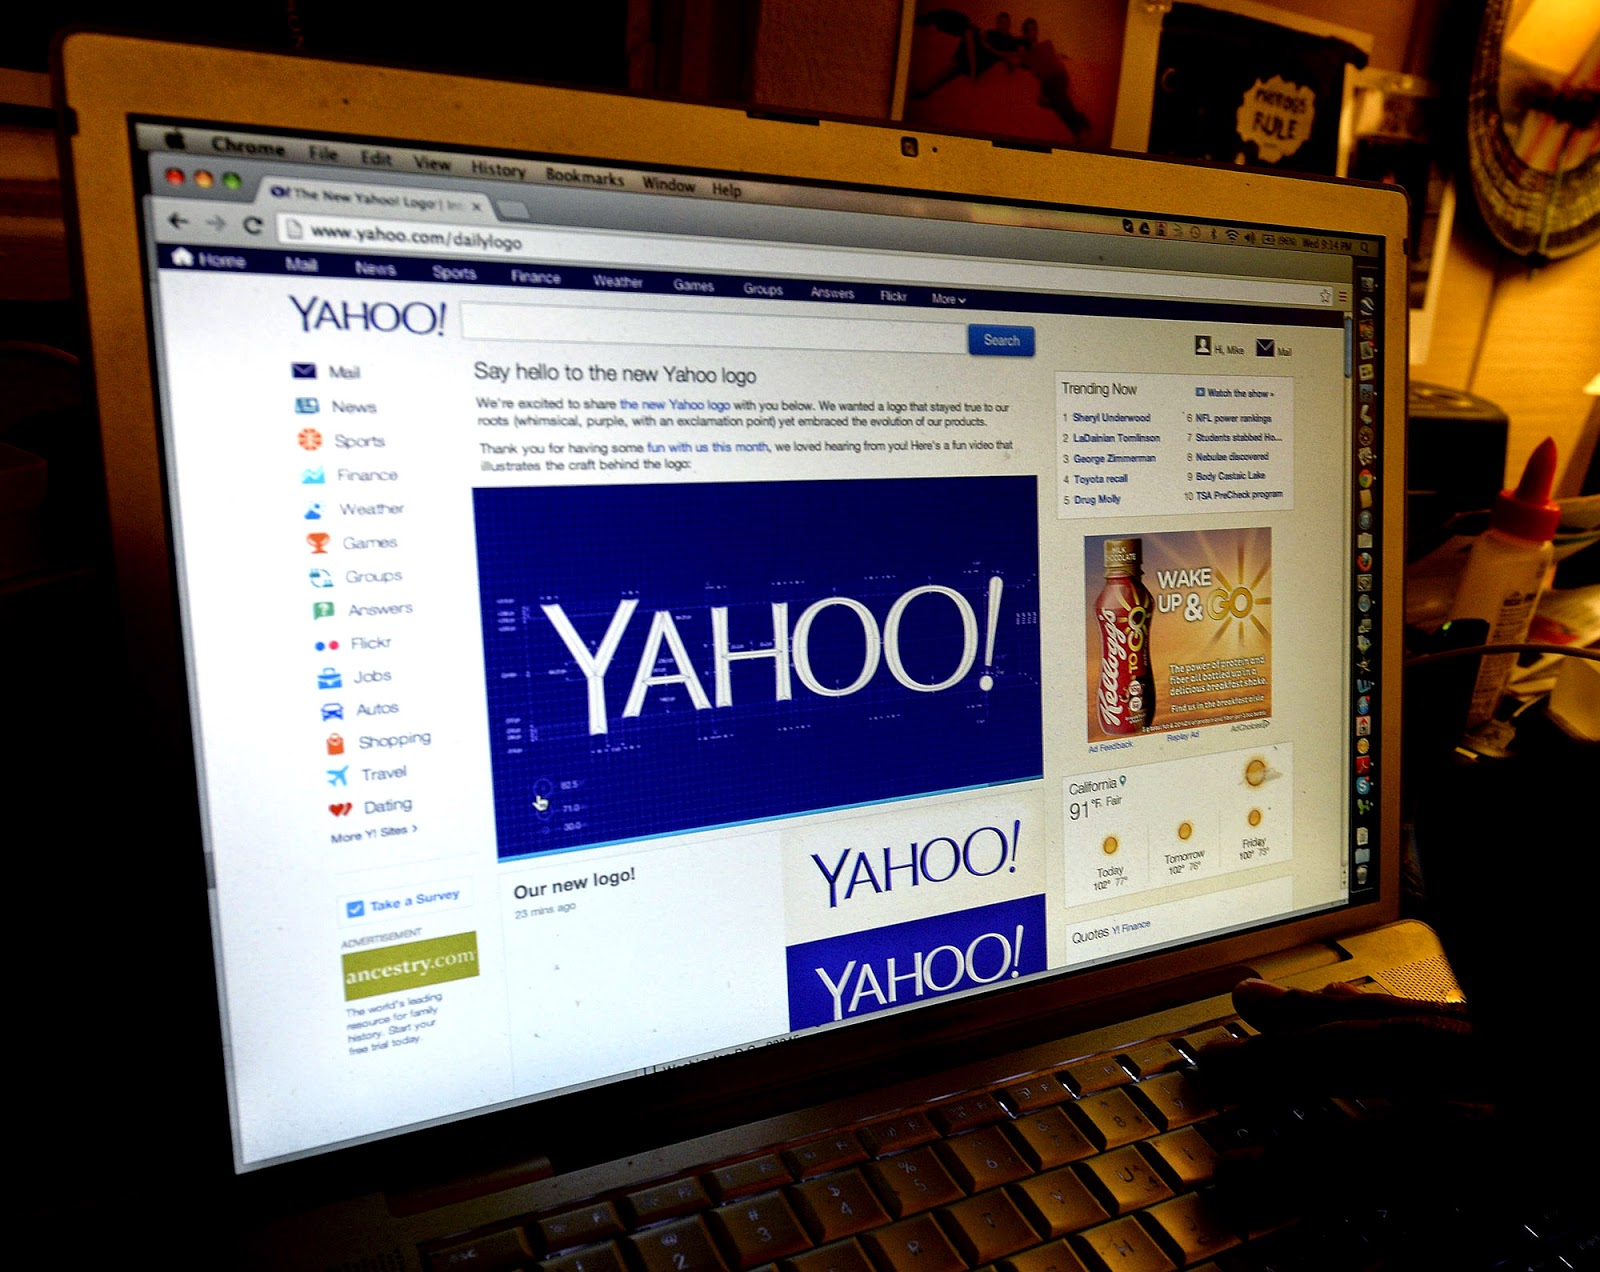 Yahoo starts prompting Internet Explorer, Opera users to switch to Firefox